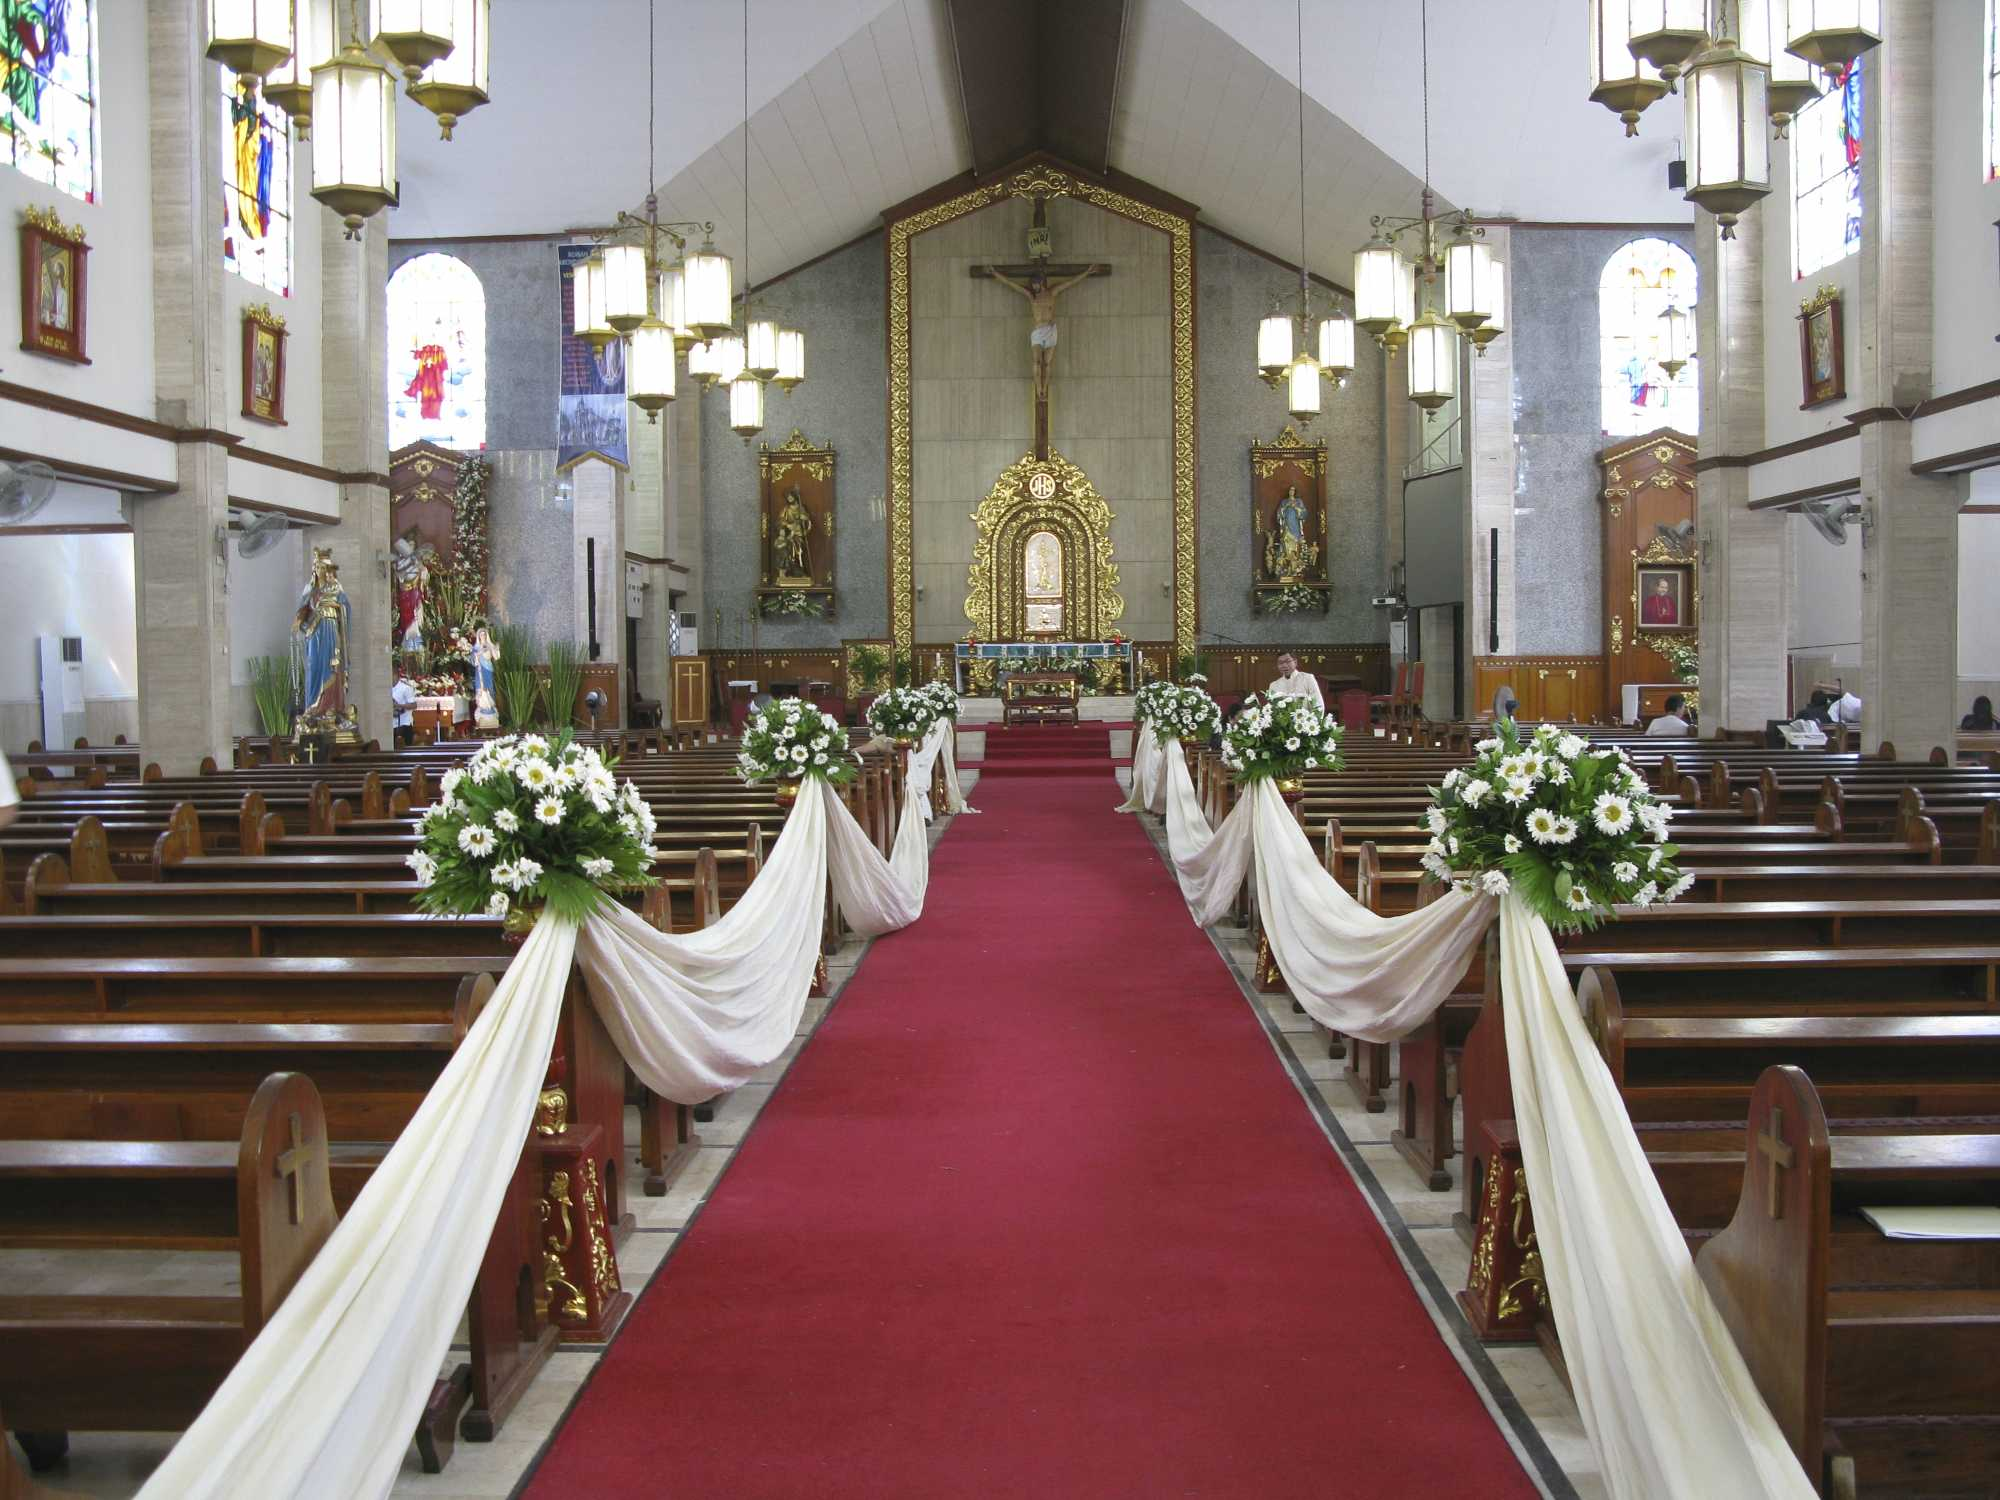 Decorating An Old Church For A Wedding